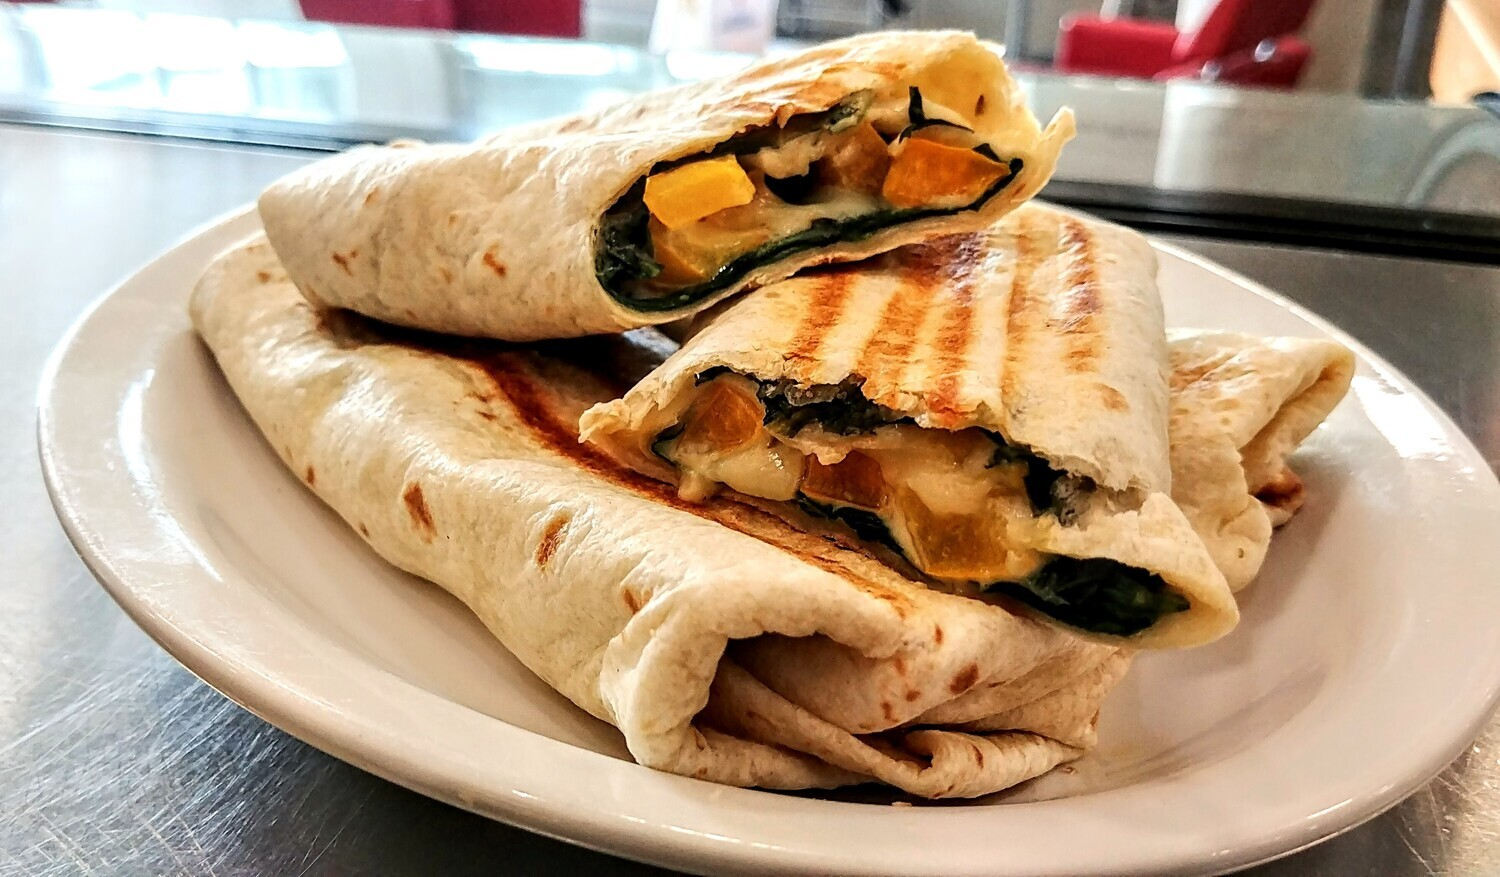 WRAP - Spinach, Ranch Dressing, Peppers & Cheese